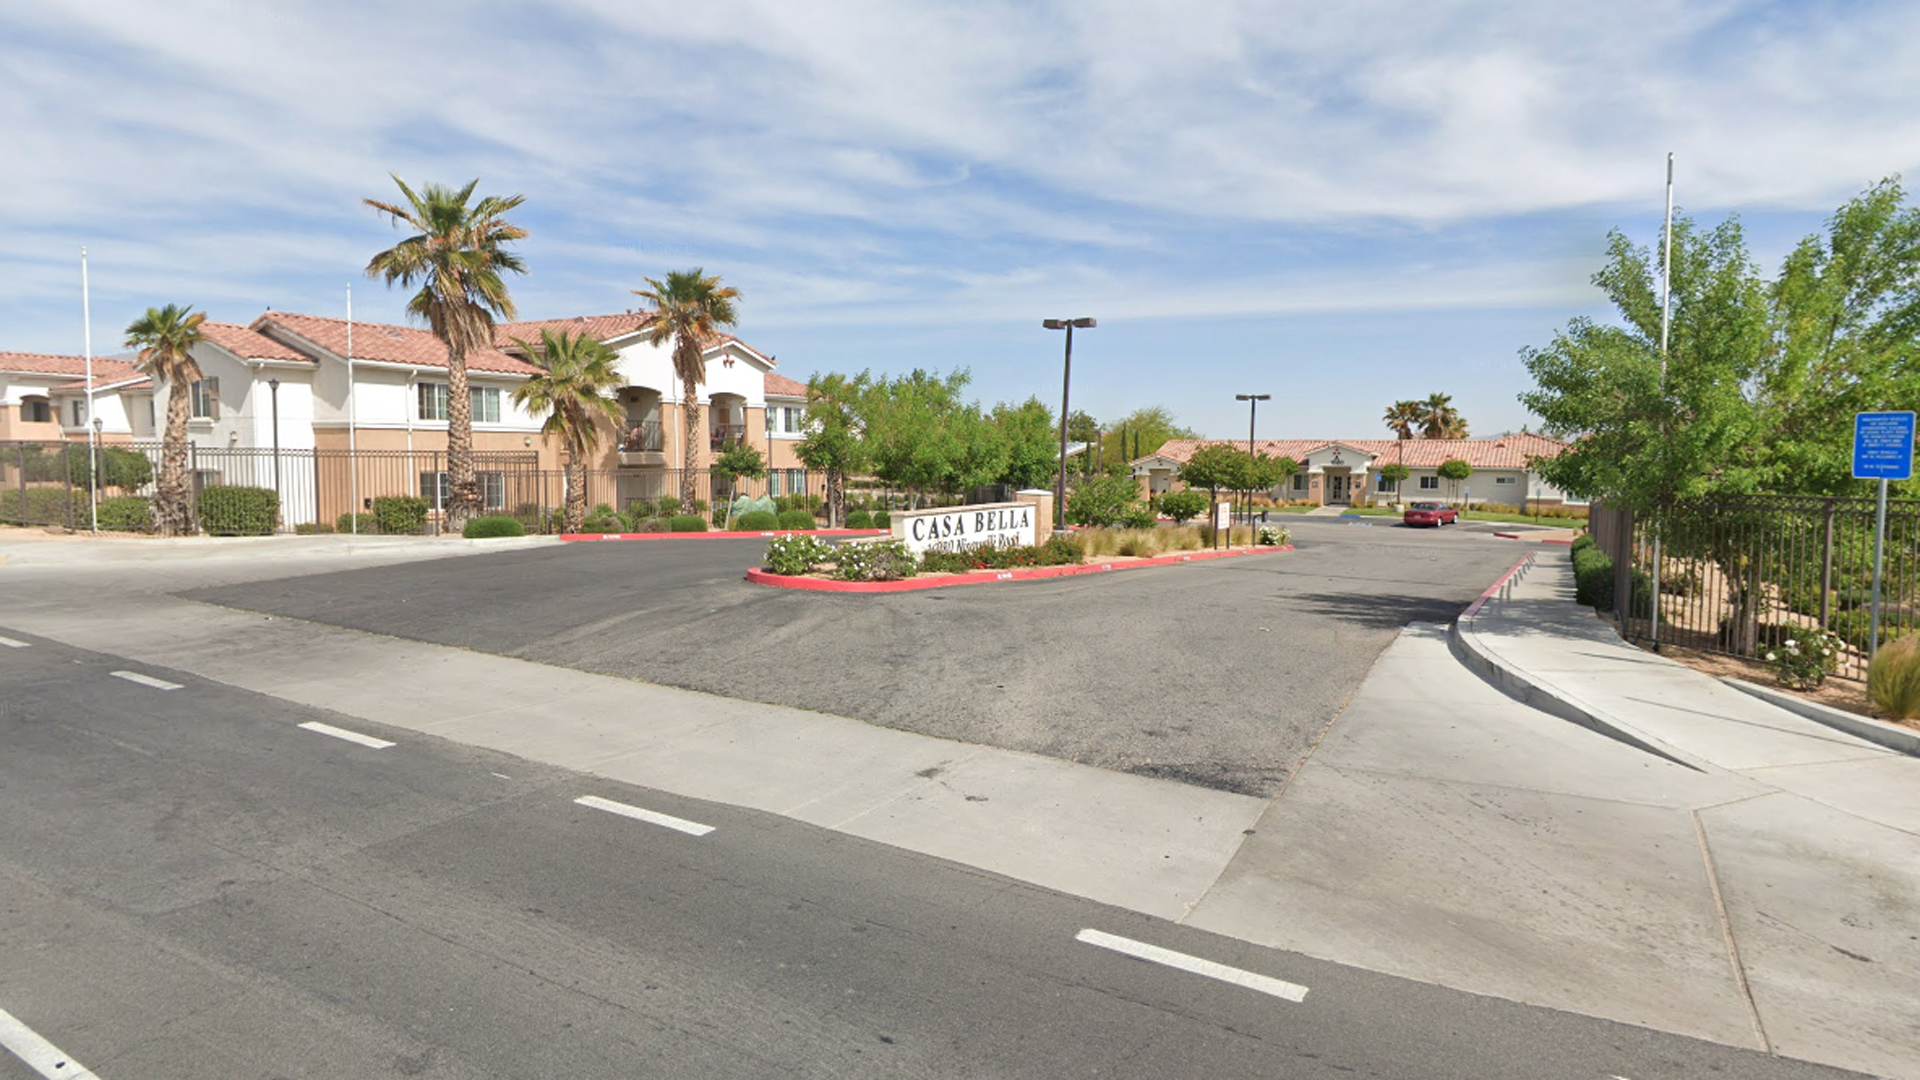 The Casa Bella apartments, 16980 Nisqualli Road in Victorville, as pictured in a Google Street View image.